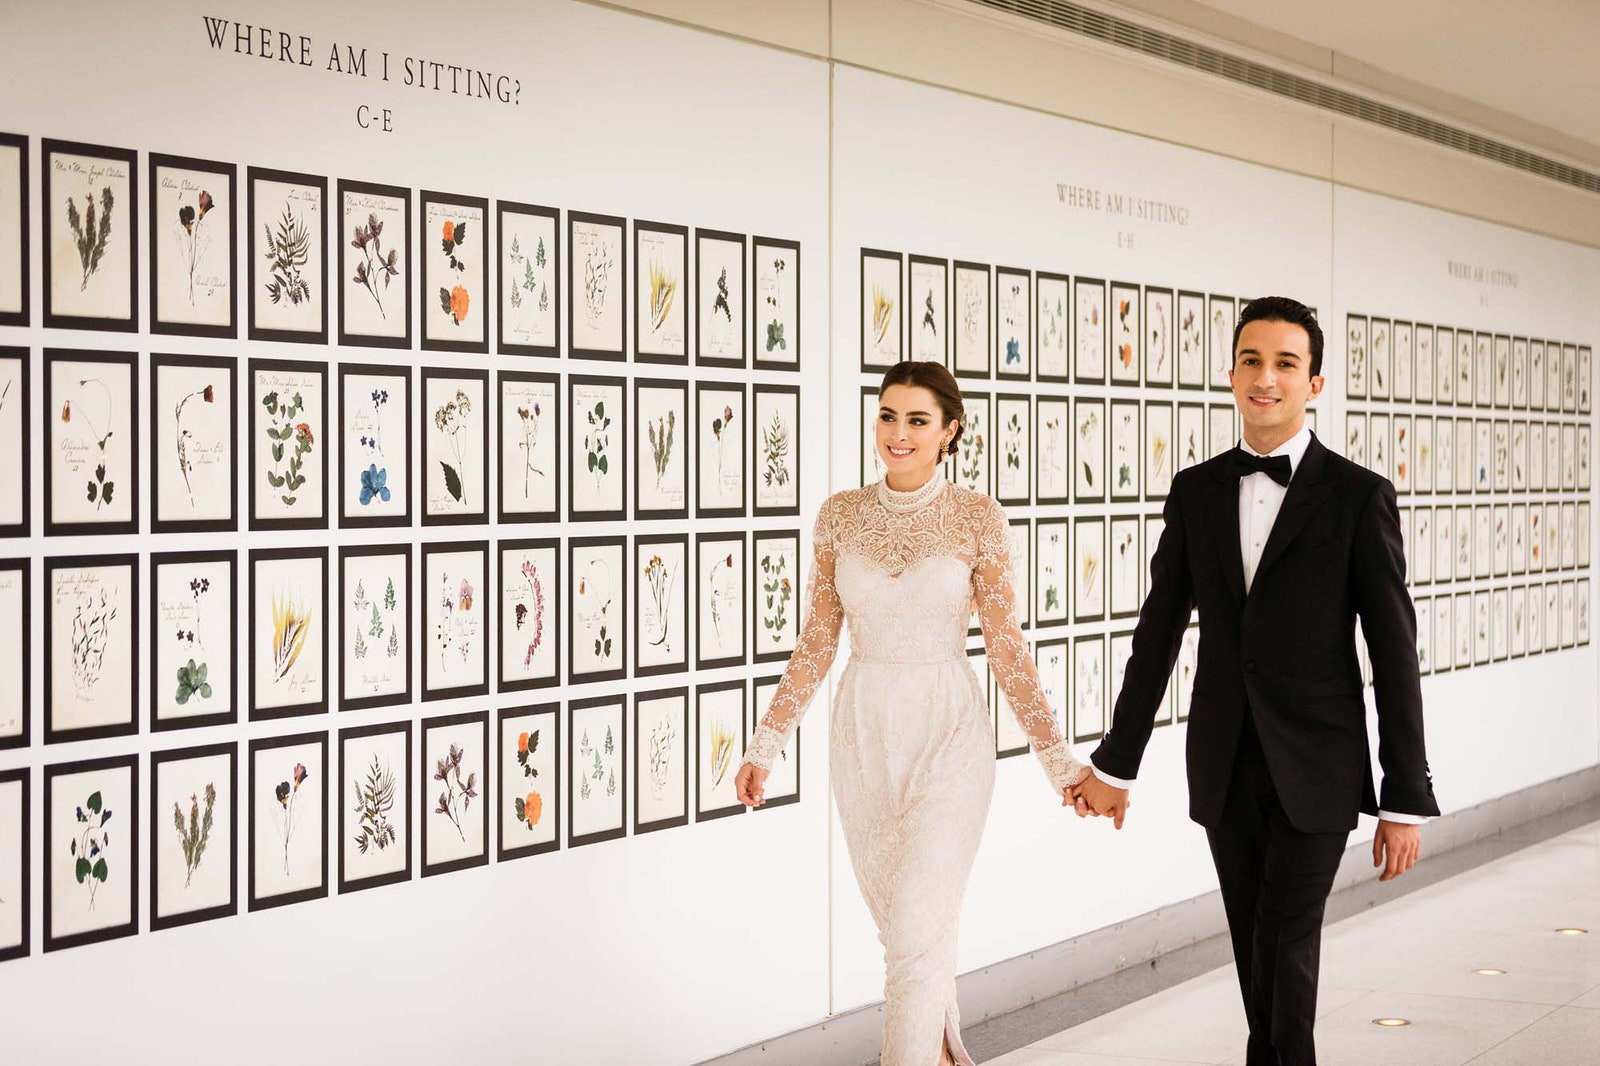 couple holding hands walking by pressed flower seating chart